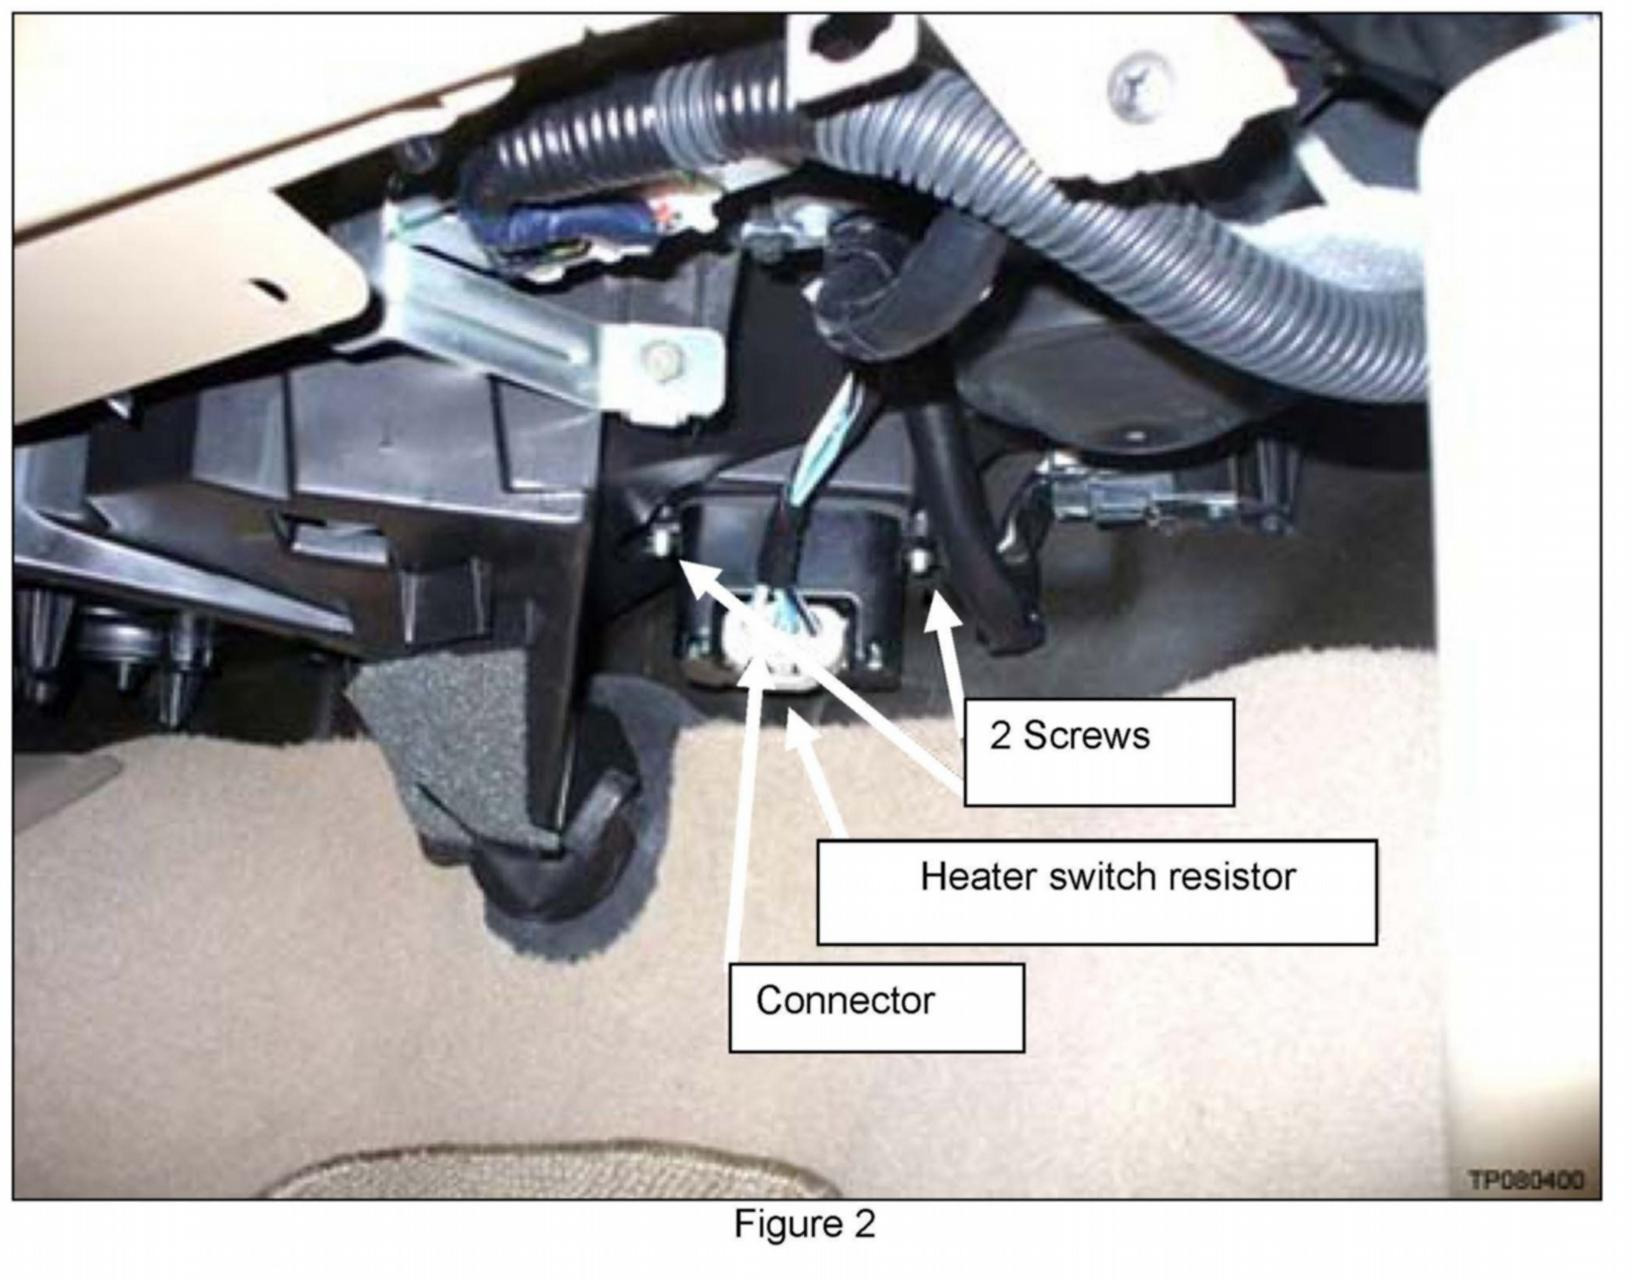 Where Is The Blower Resistor Part Located The Ac Stays On